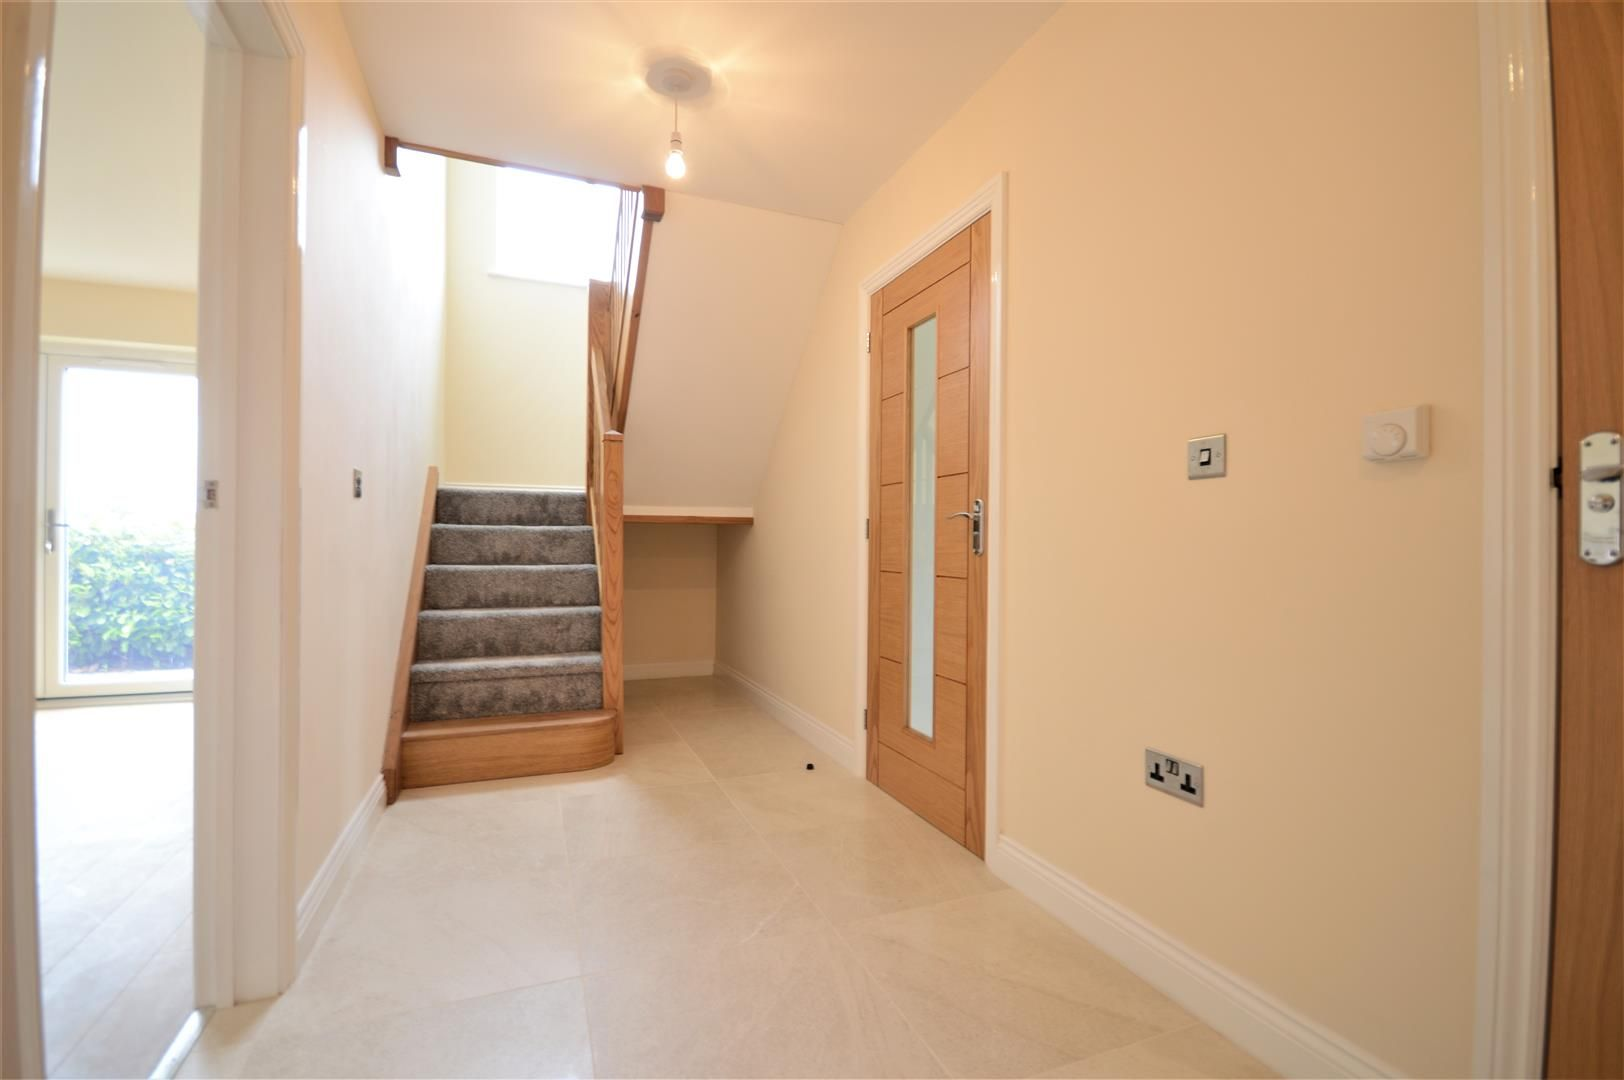 4 bed detached for sale in Kings Acre  - Property Image 3